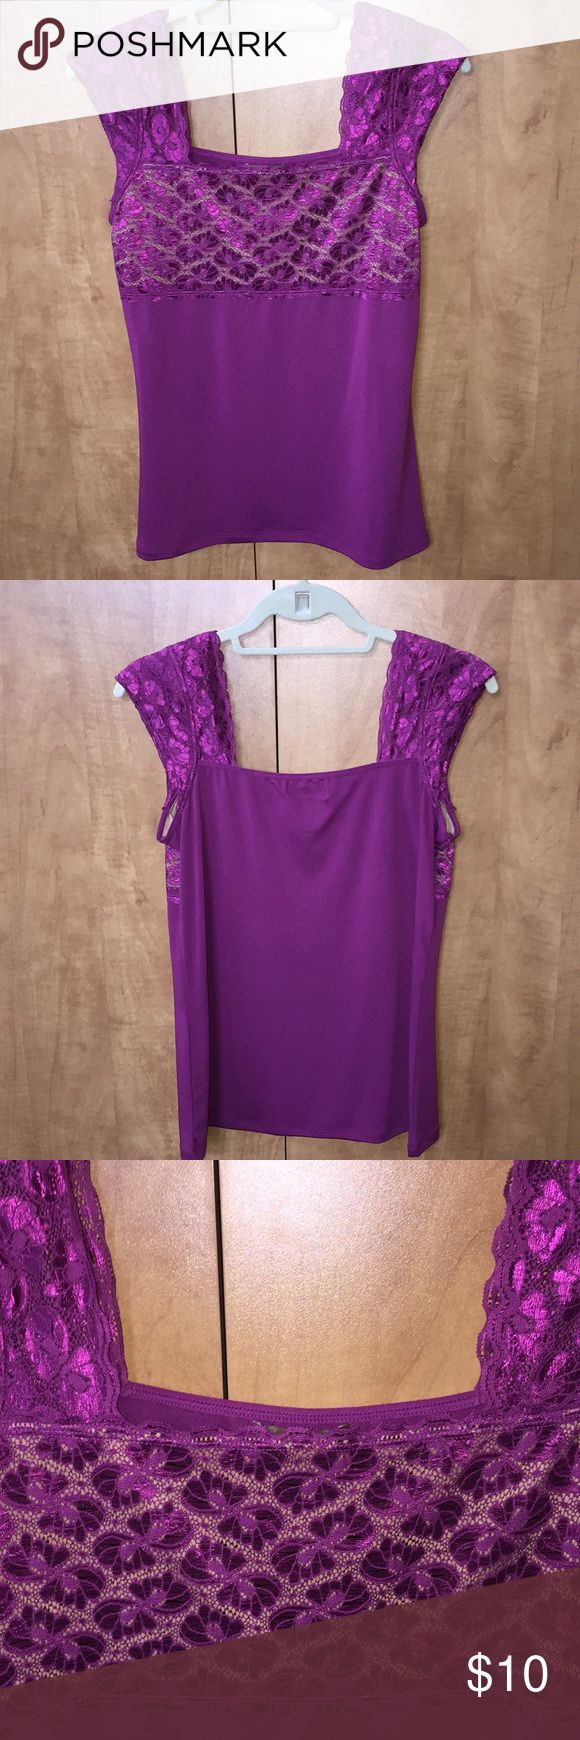 """Rich magenta lace top/cami Magenta lace top/cami. Square neckline. Bodice lines in nude. Solid bottom and back. Pockets inside shoulders for small removable shoulder pads for shaping under cardigans and jackets. Center back length from square neckline to hem about 18 1/2"""". Bust about 36"""". Stretch fabric. Kathleen Kirkwood Tops"""